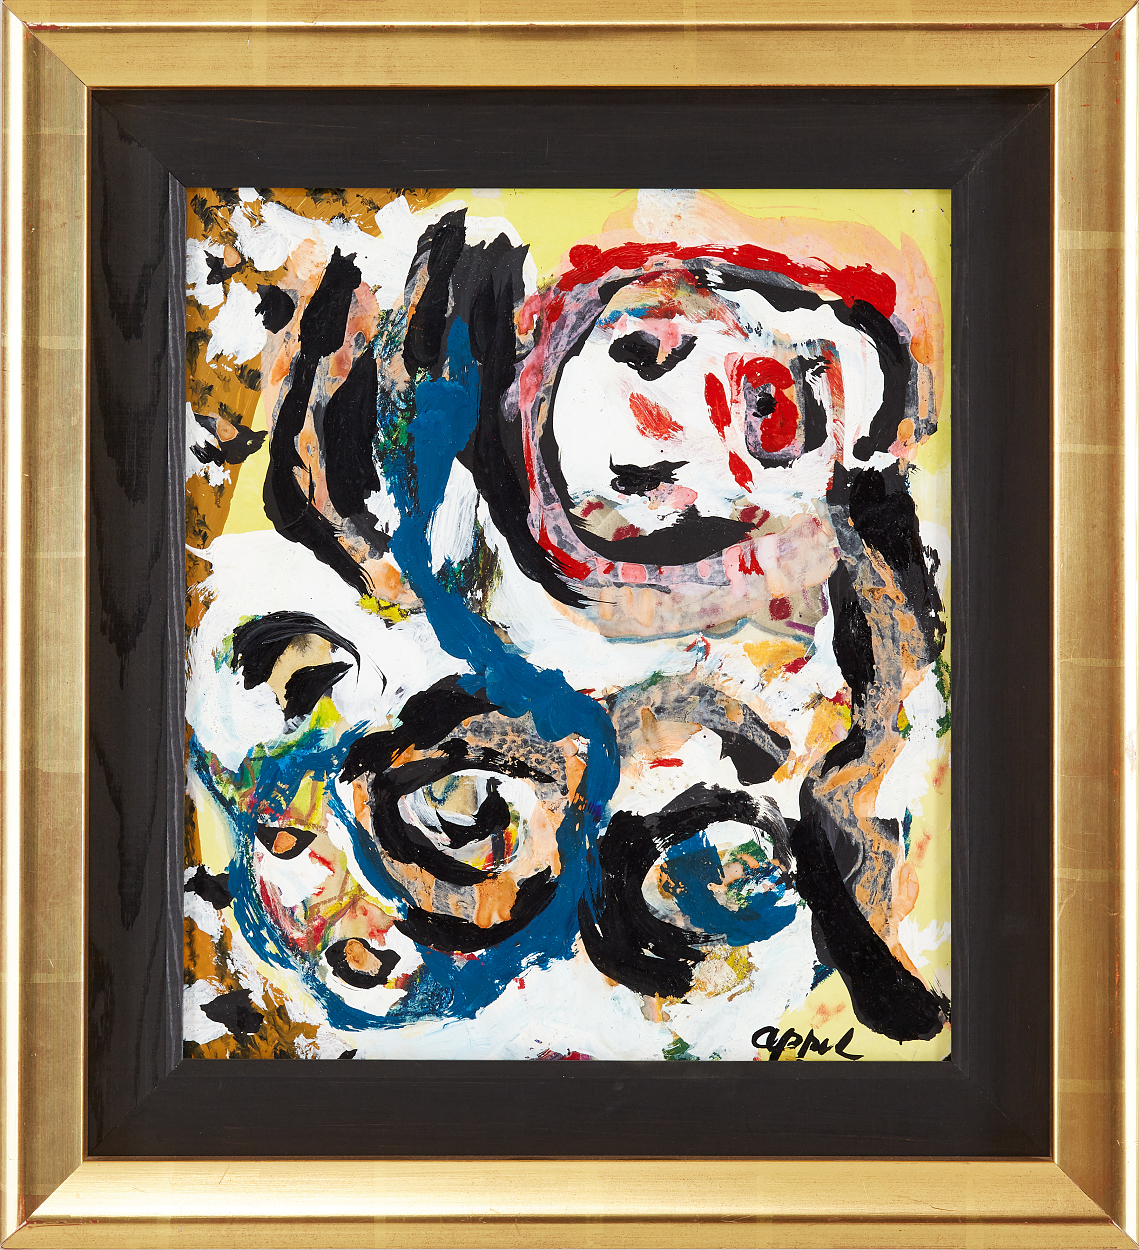 Karel Appel, Figurkomposition